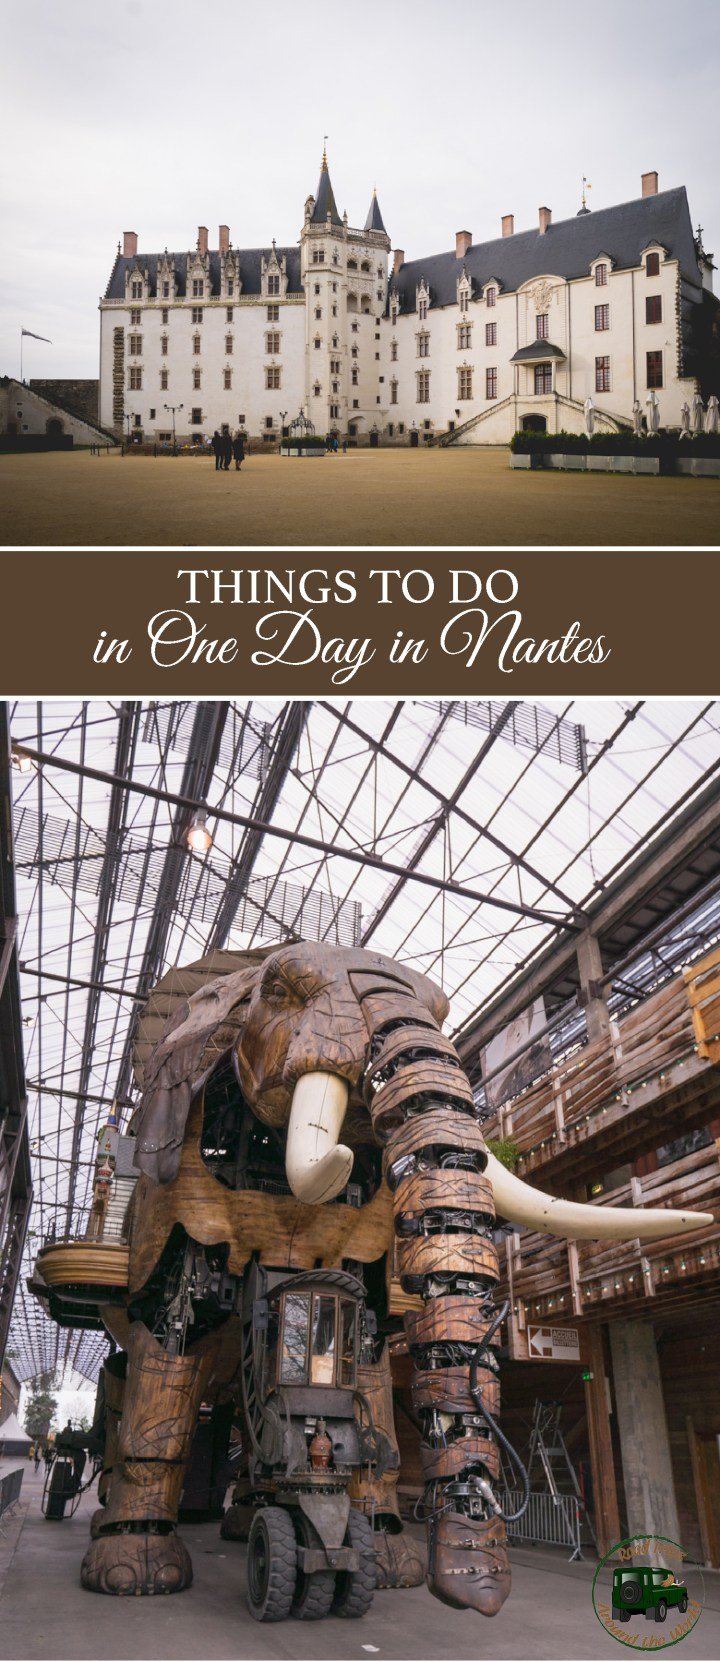 Things to do in One Day in Nantes - Visit roadtripsaroundtheworld.com for some great ideas